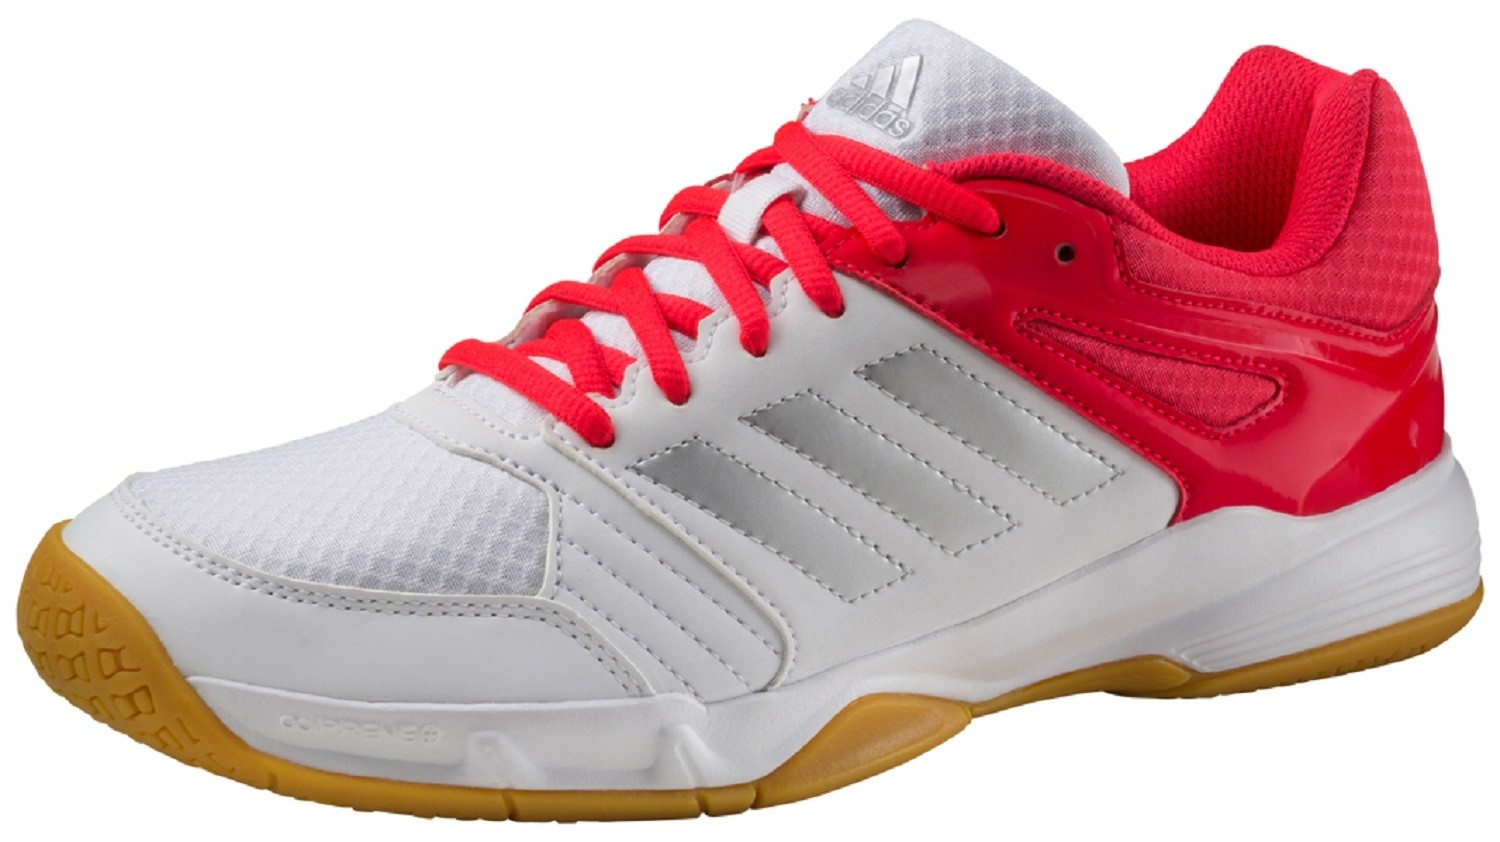 adidas Speedcourt W Damen Hallenschuhe 39 1/3 FTWWHT/SILVMT/SHORED